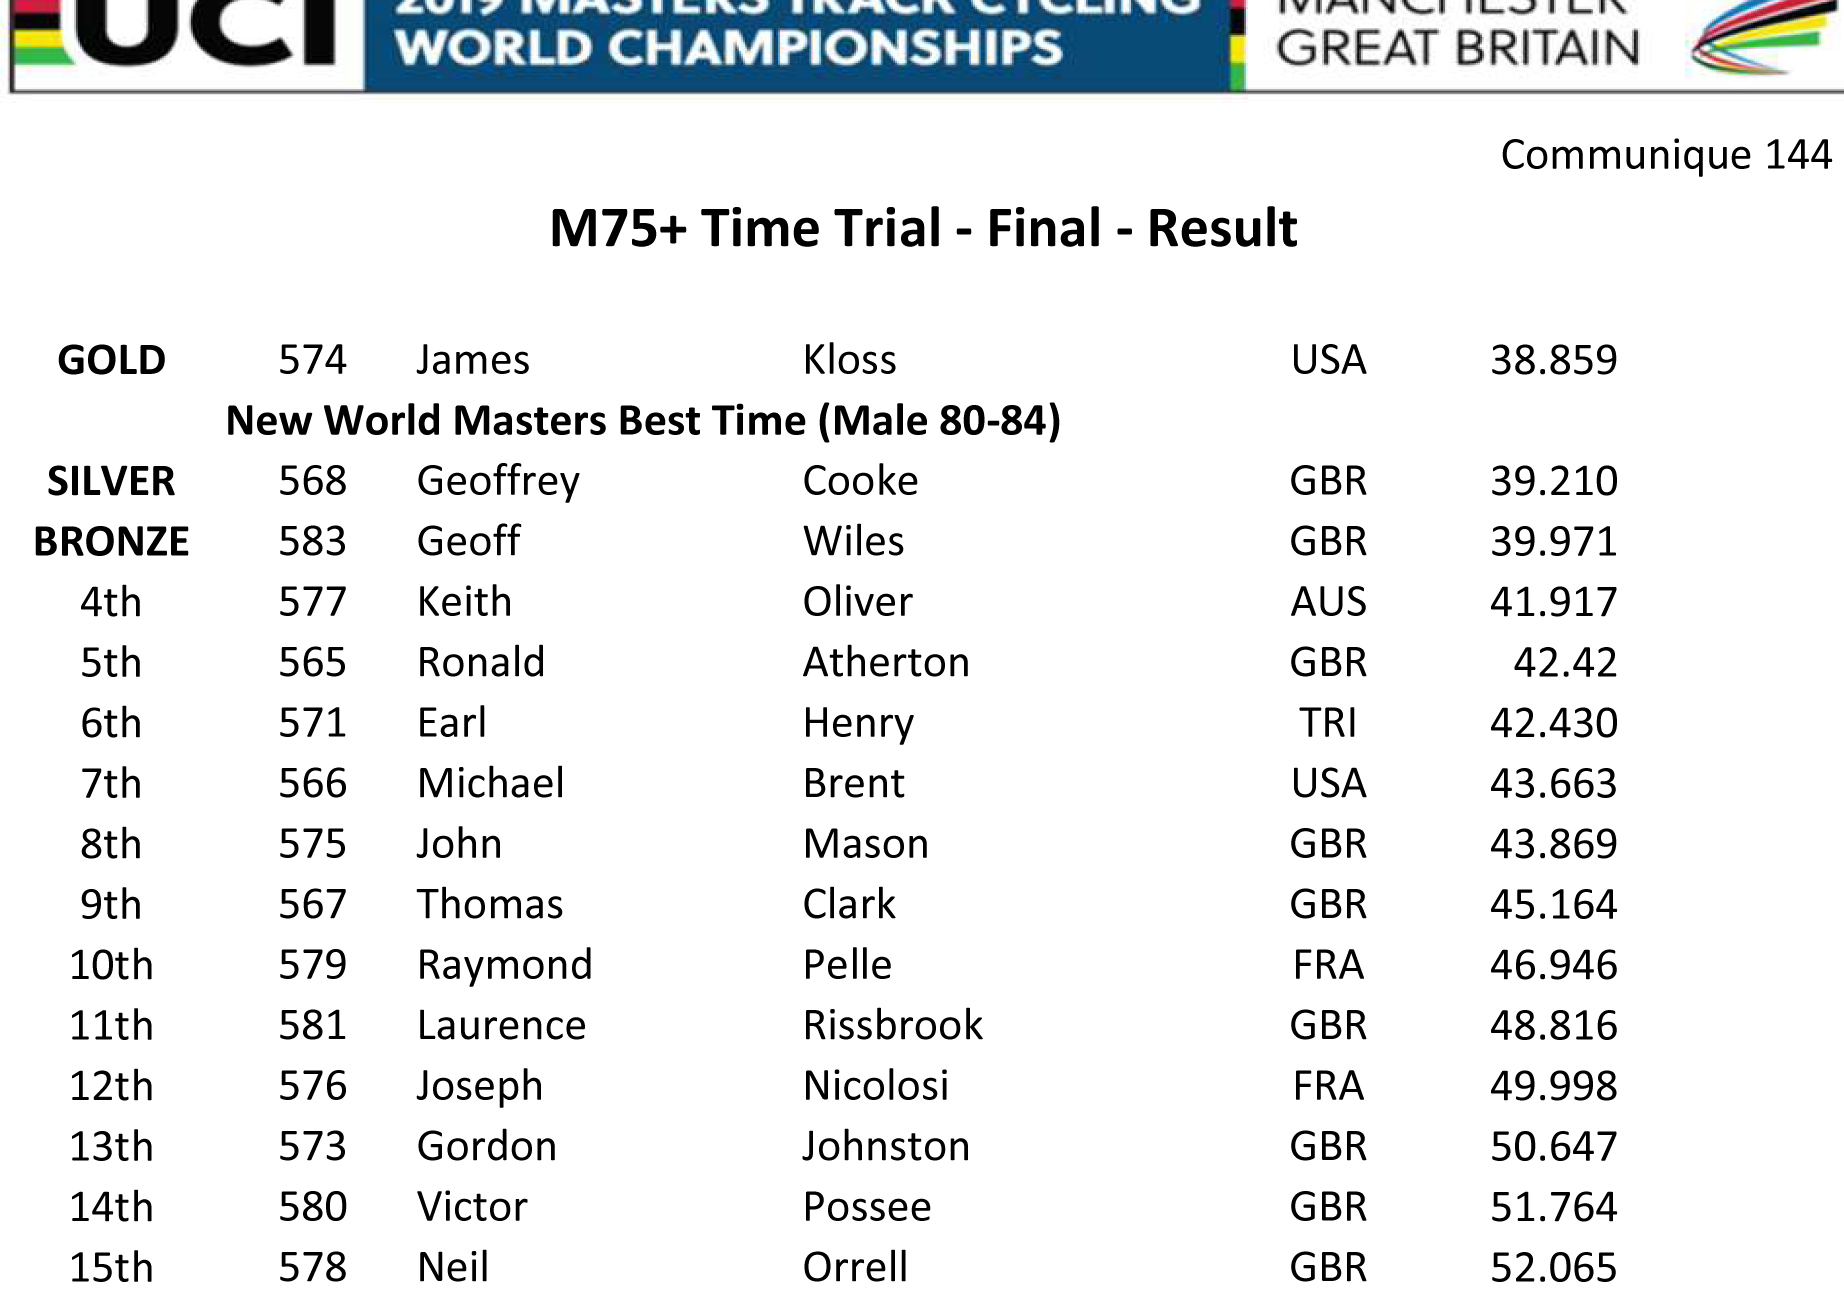 M75 TIME TRIAL RESULT